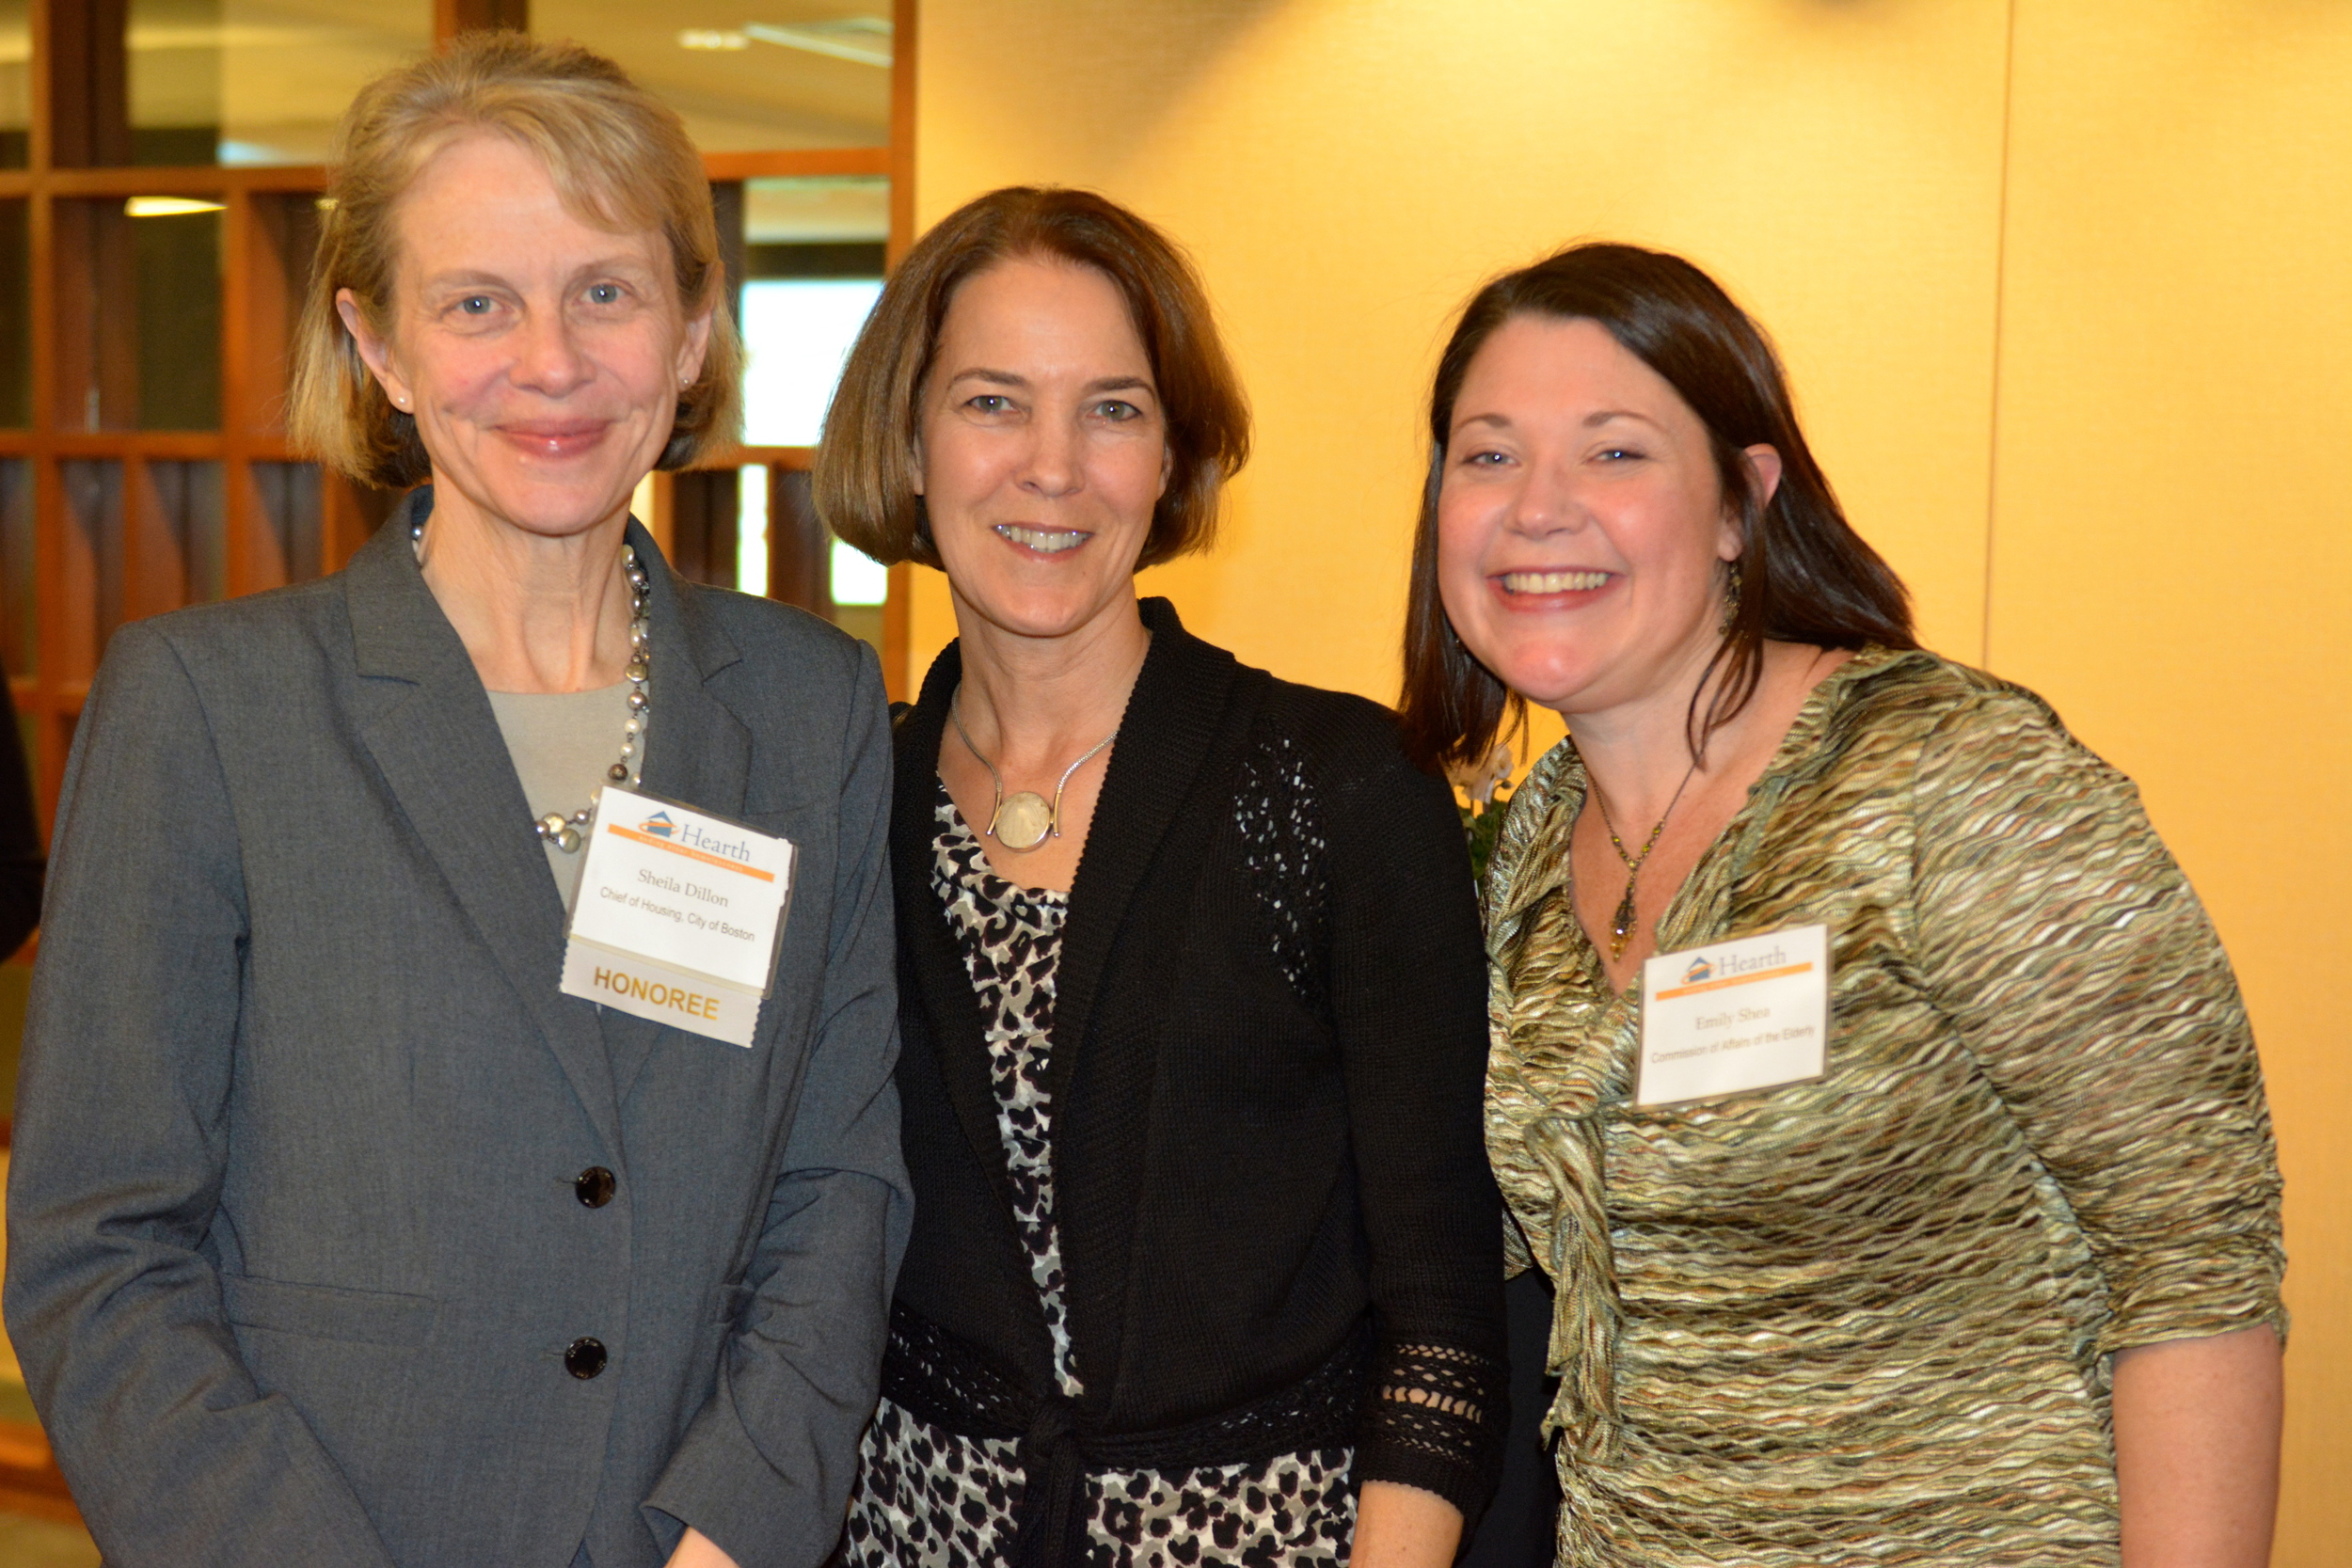 Sheila Dillon (left) with Lisa Alberghini from the Planning Office of Urban Affairsand Emily Shea, City of Boston's Commissioner of Elderly Affairs